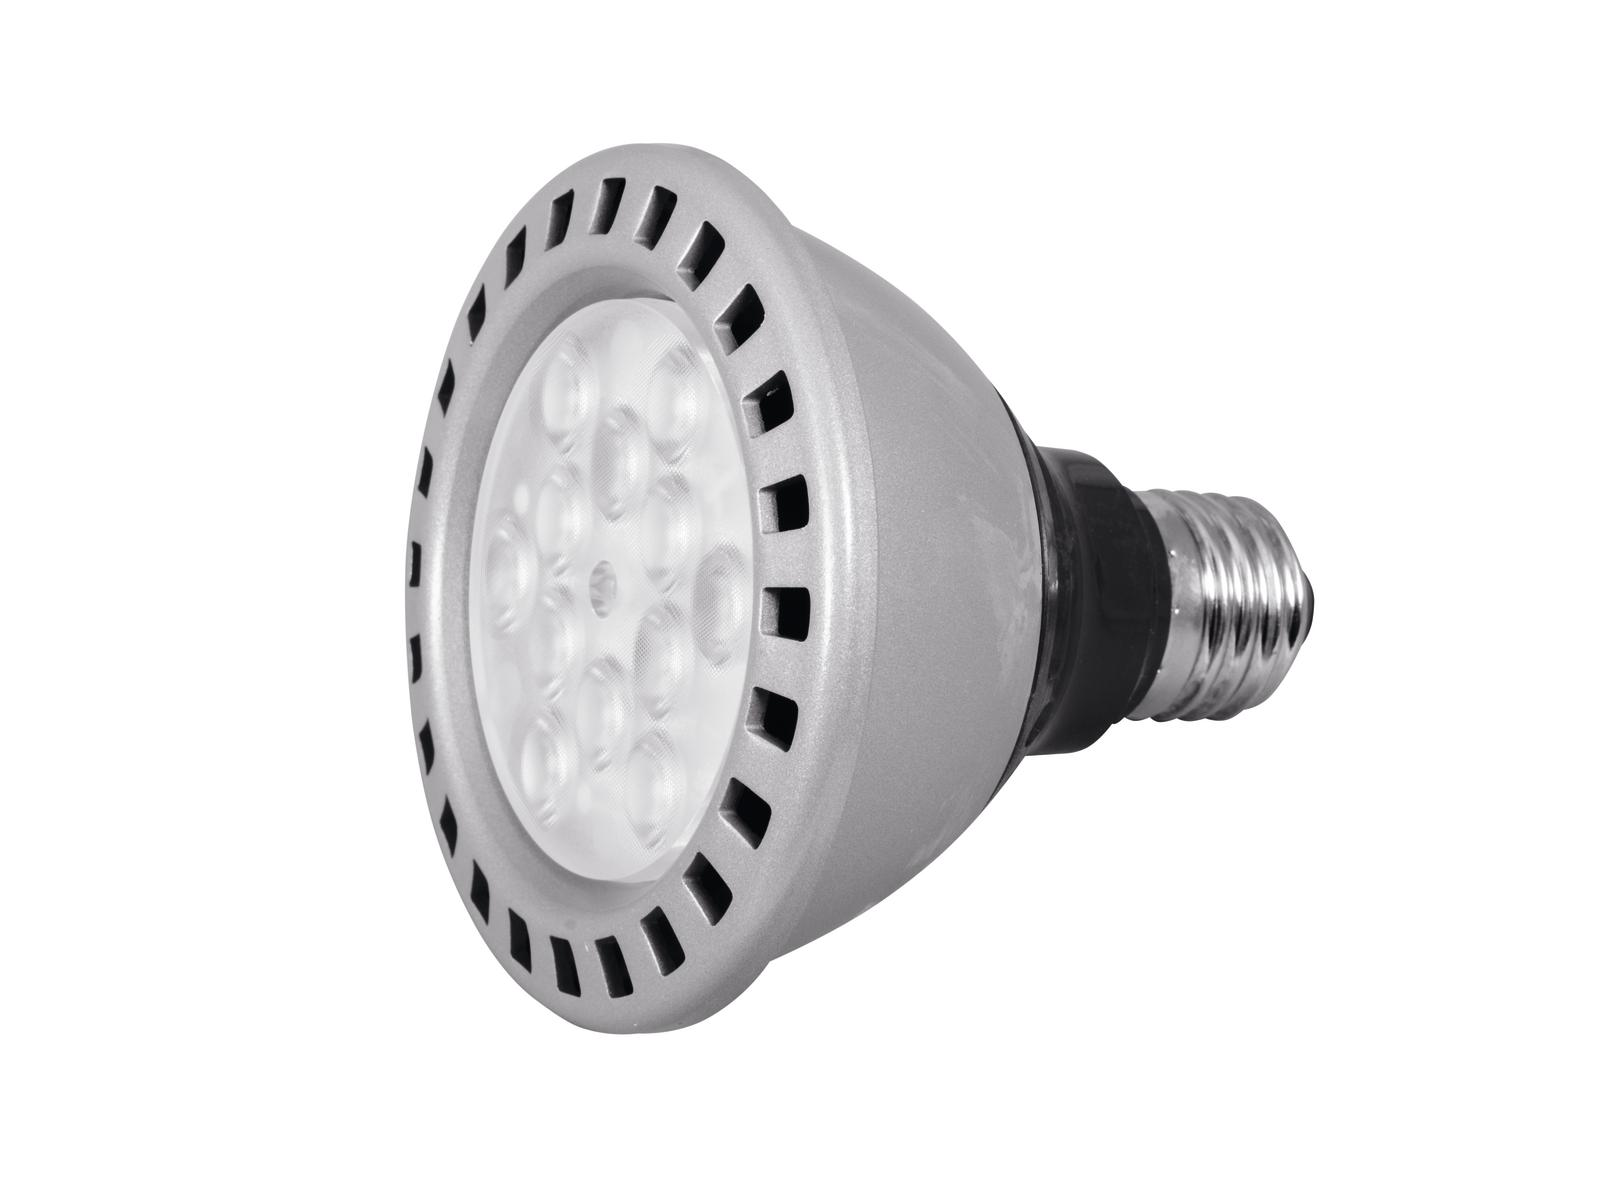 PHILIPS LED PAR-30 9,5 W 2700K